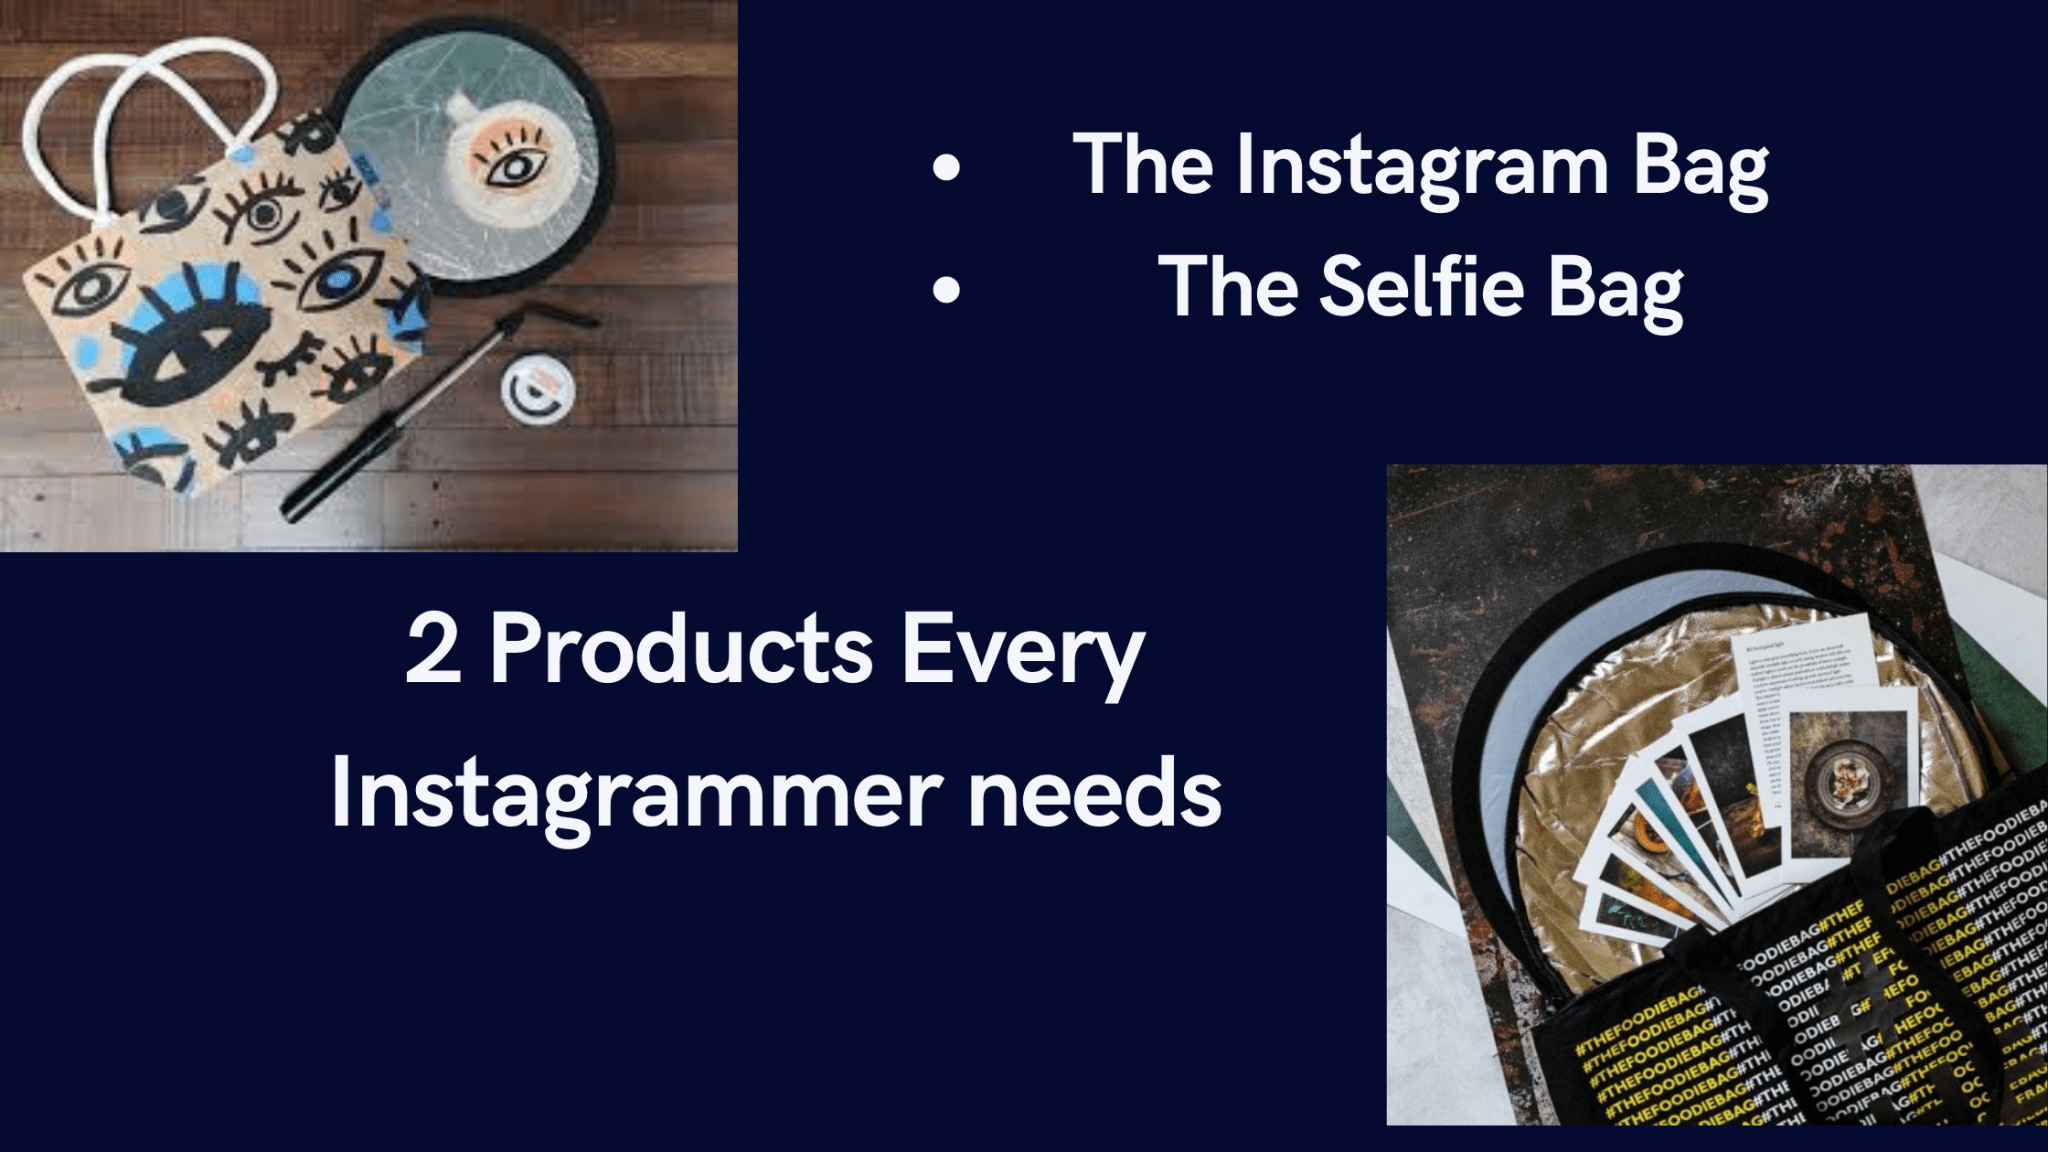 2 Products Every Instagrammer needs